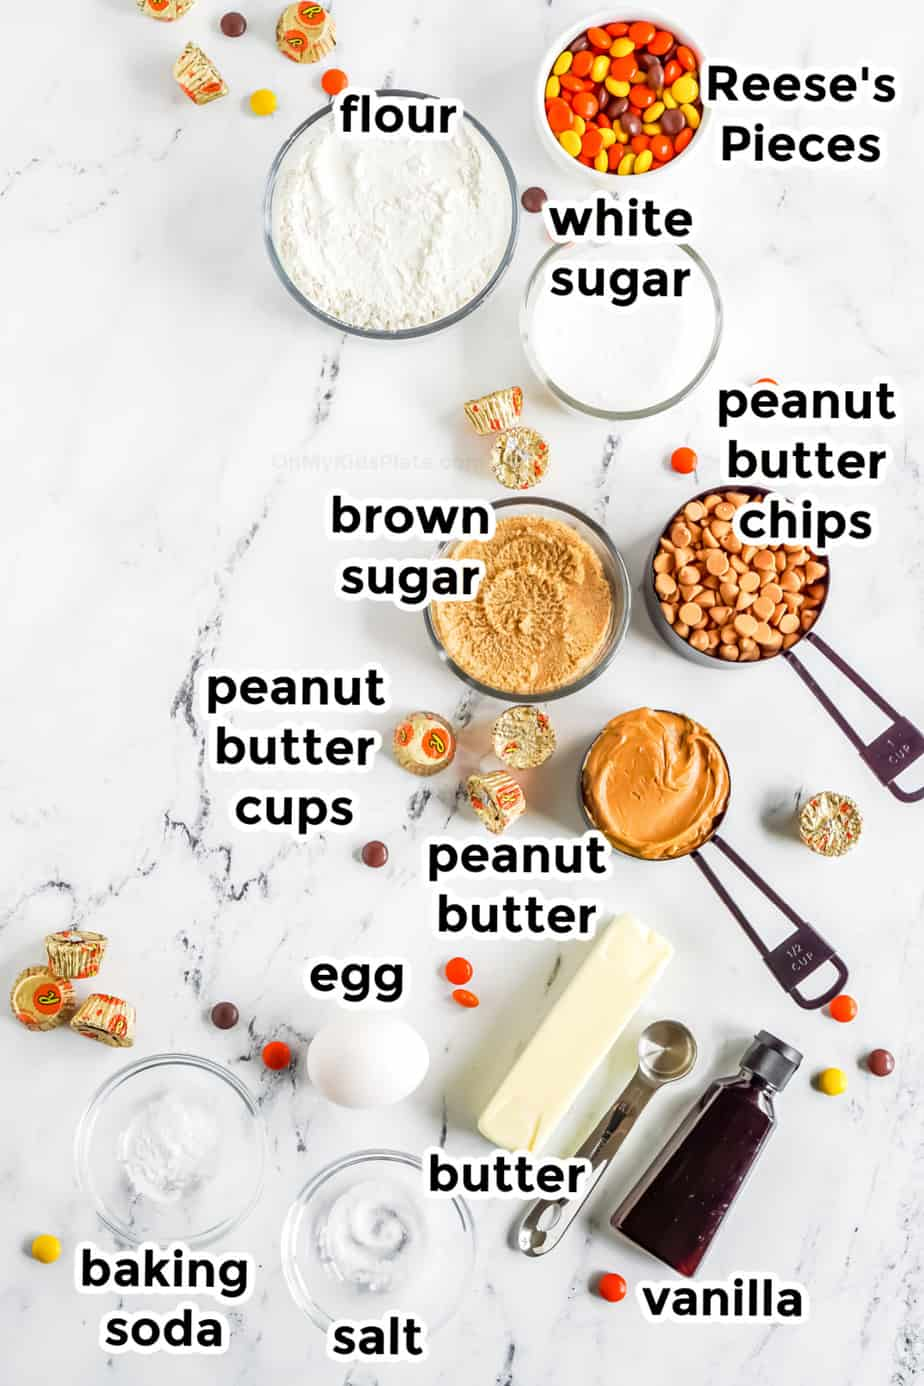 Ingredients in bowls for Reese's Pieces Peanut Butter Chip Cookies from above labeled.